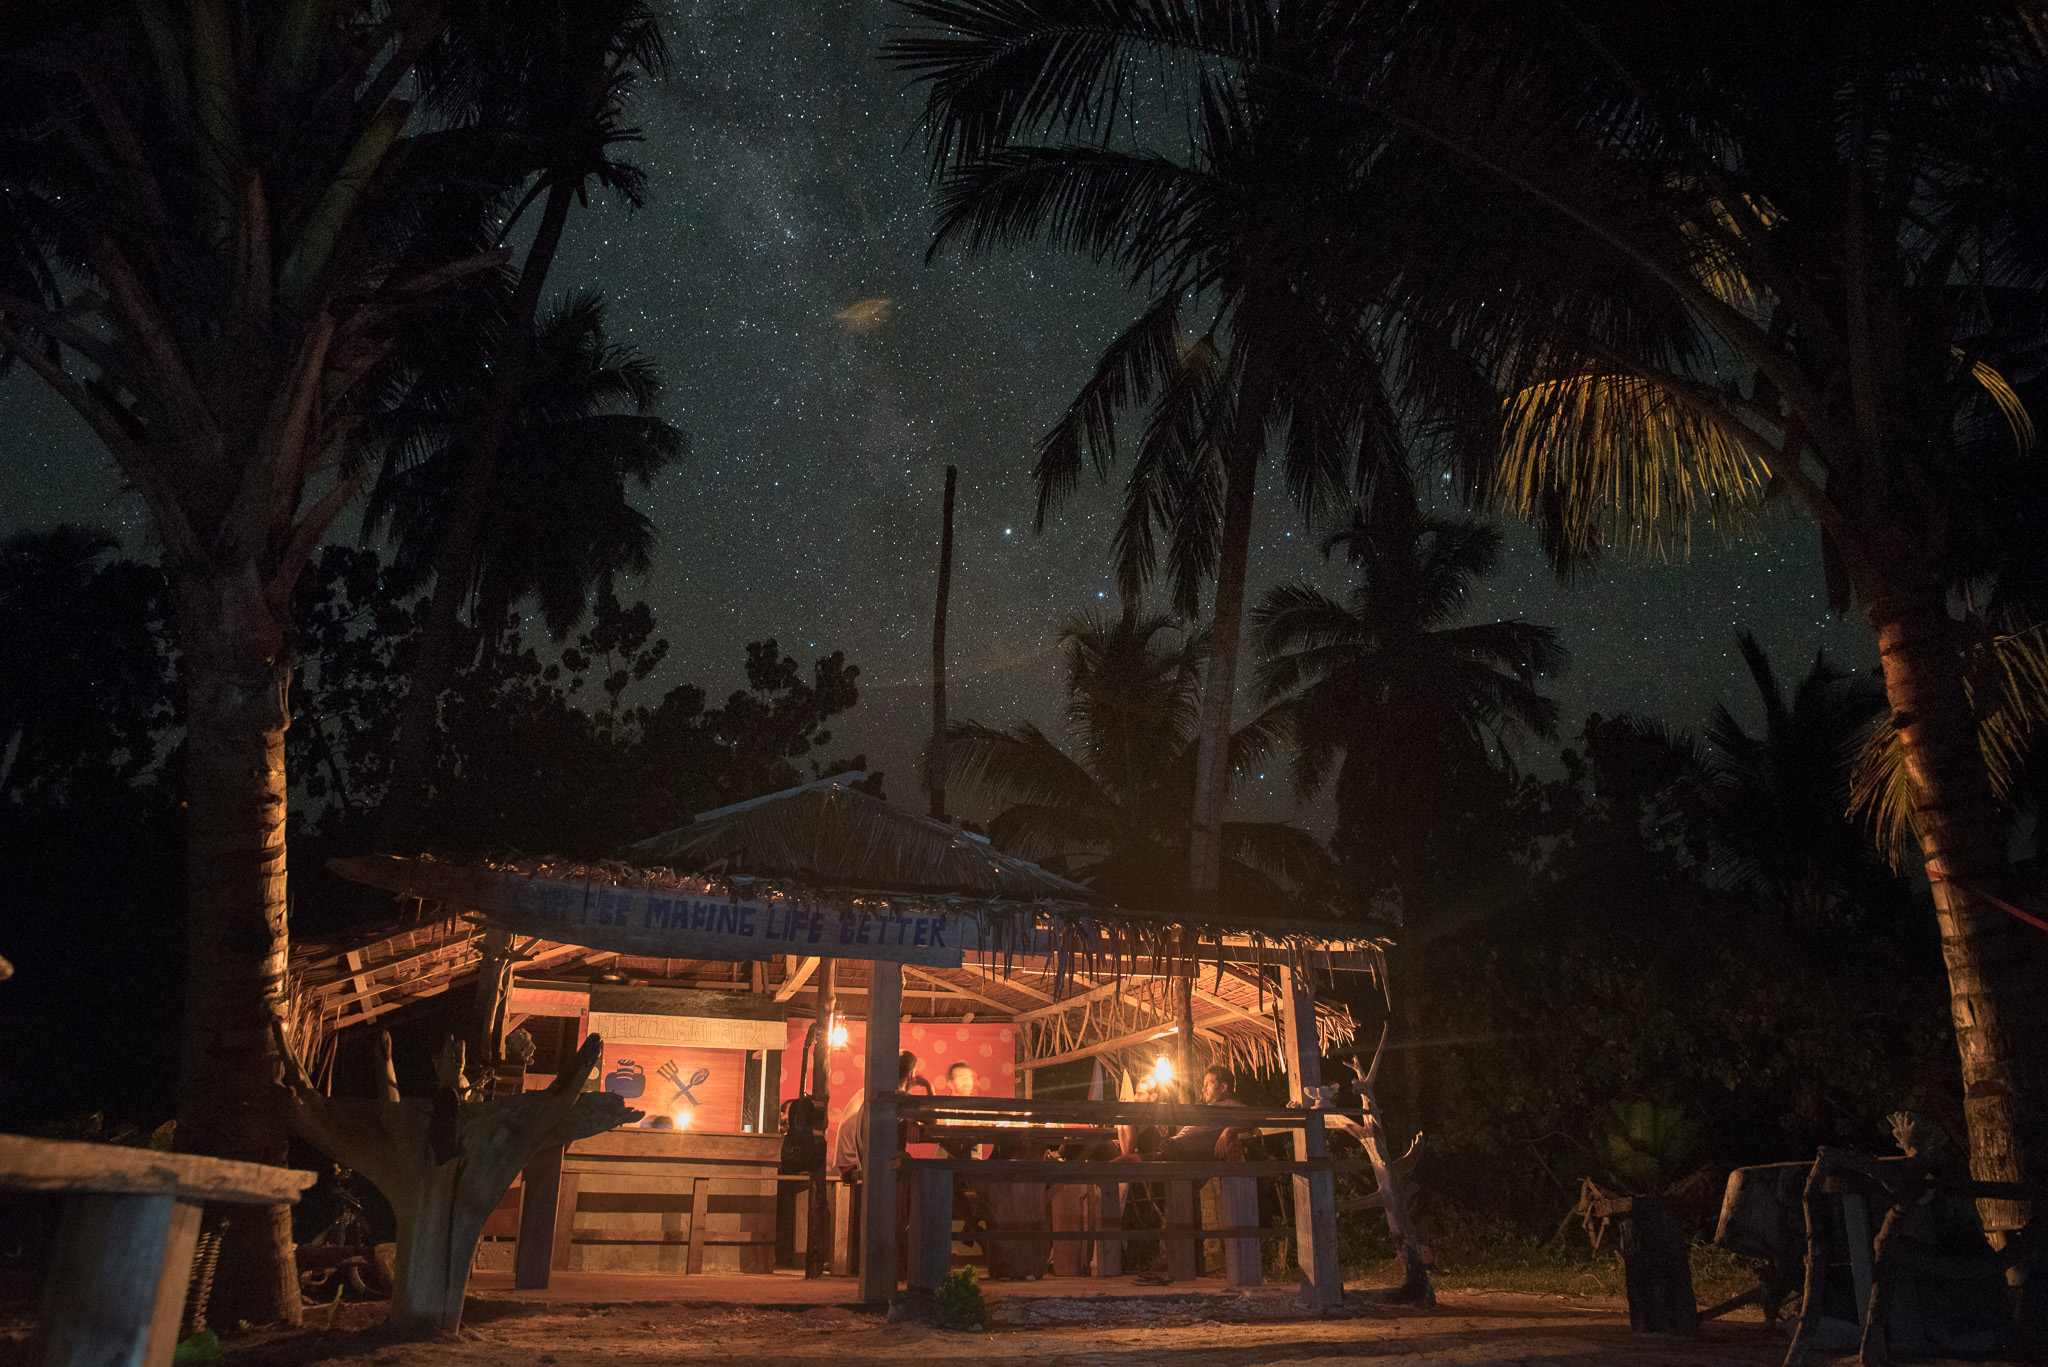 Mentawai night stars